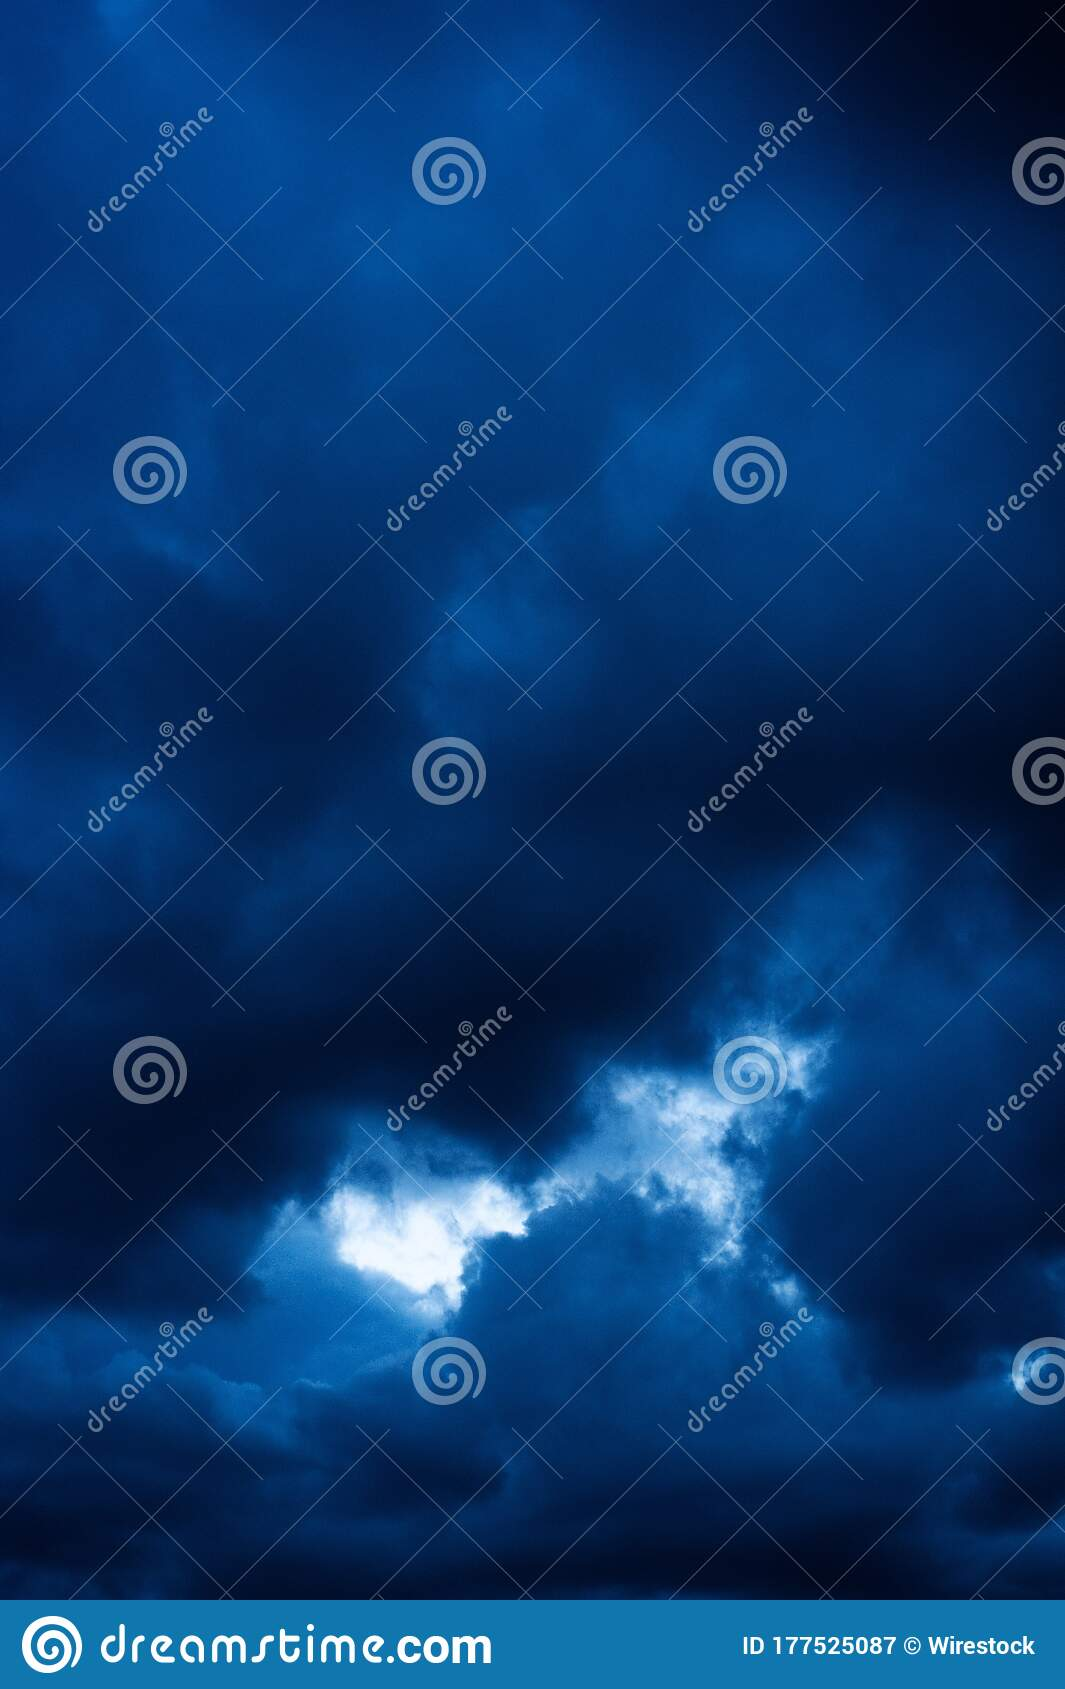 Vertical Picture Of Dark Clouds In The Evening Cool For Backgrounds And Wallpapers Stock Image Image Of Dusk Landscape 177525087